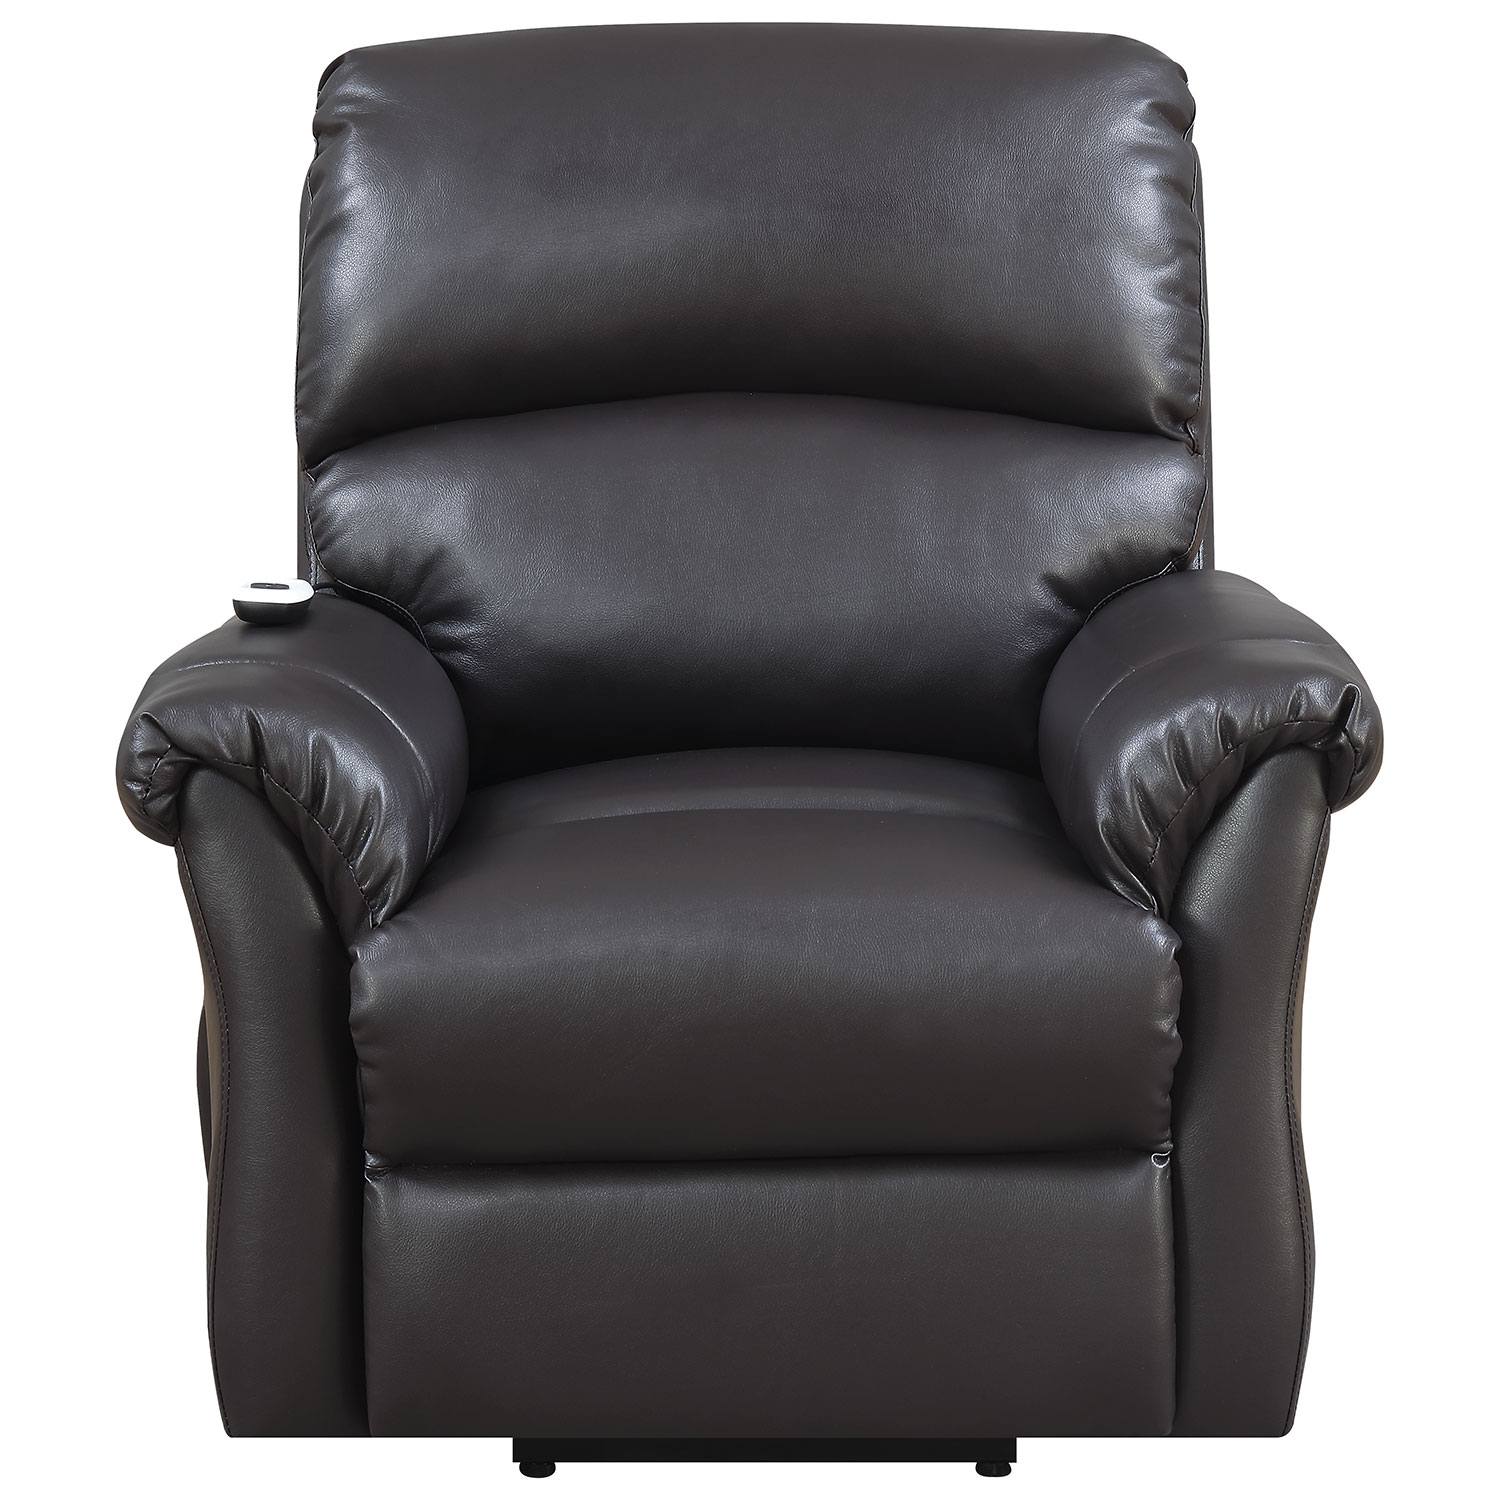 Recliners Shop Recliner Chairs line Best Buy Canada